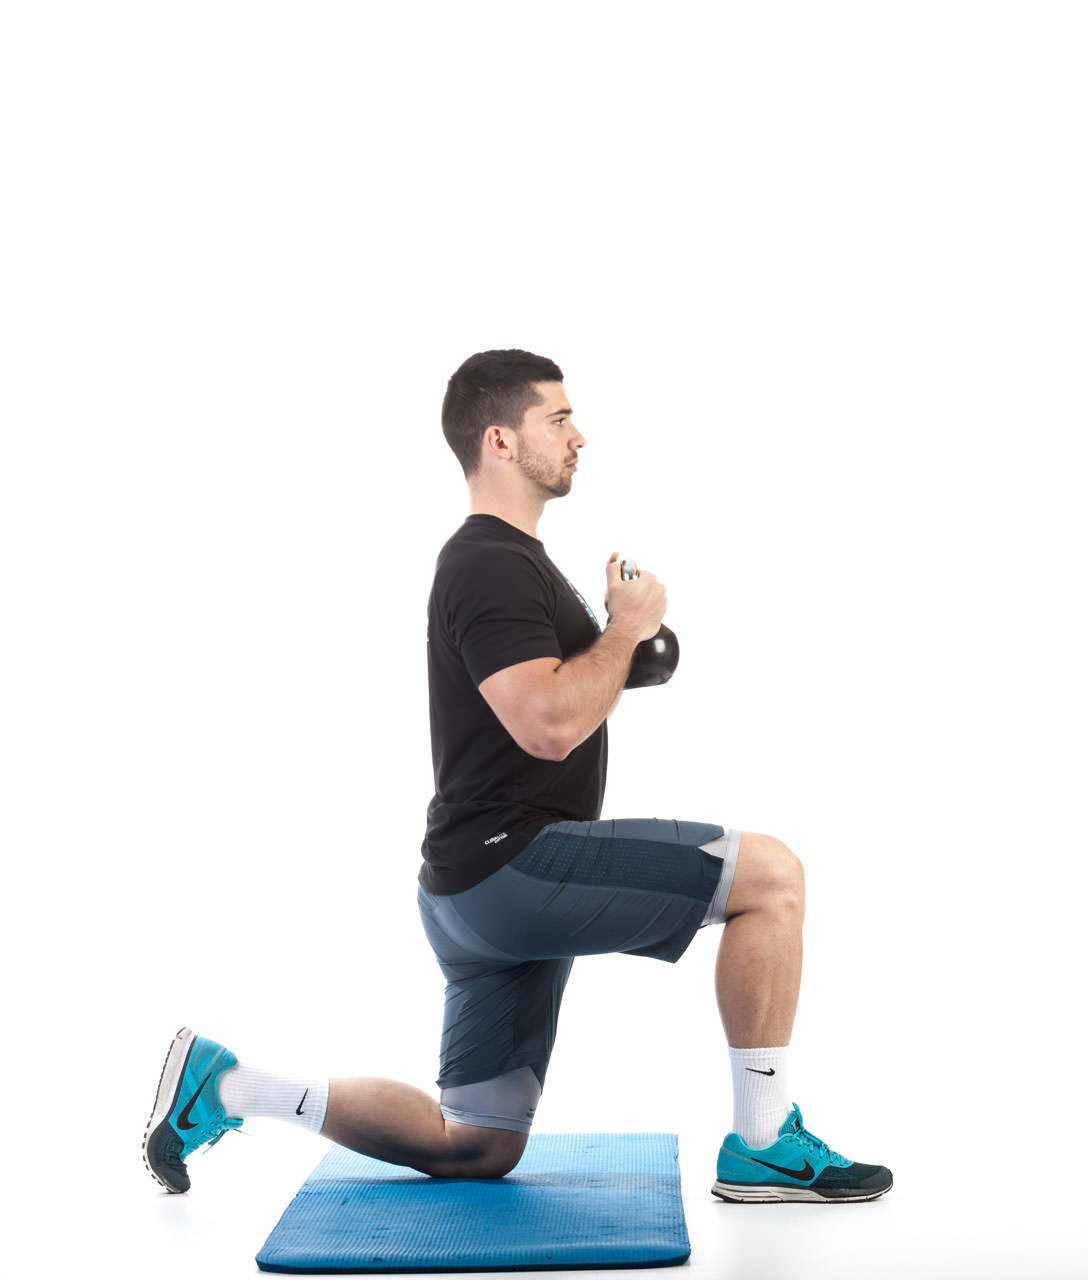 Kettlebell Kneeling to Stand-Up frame #2